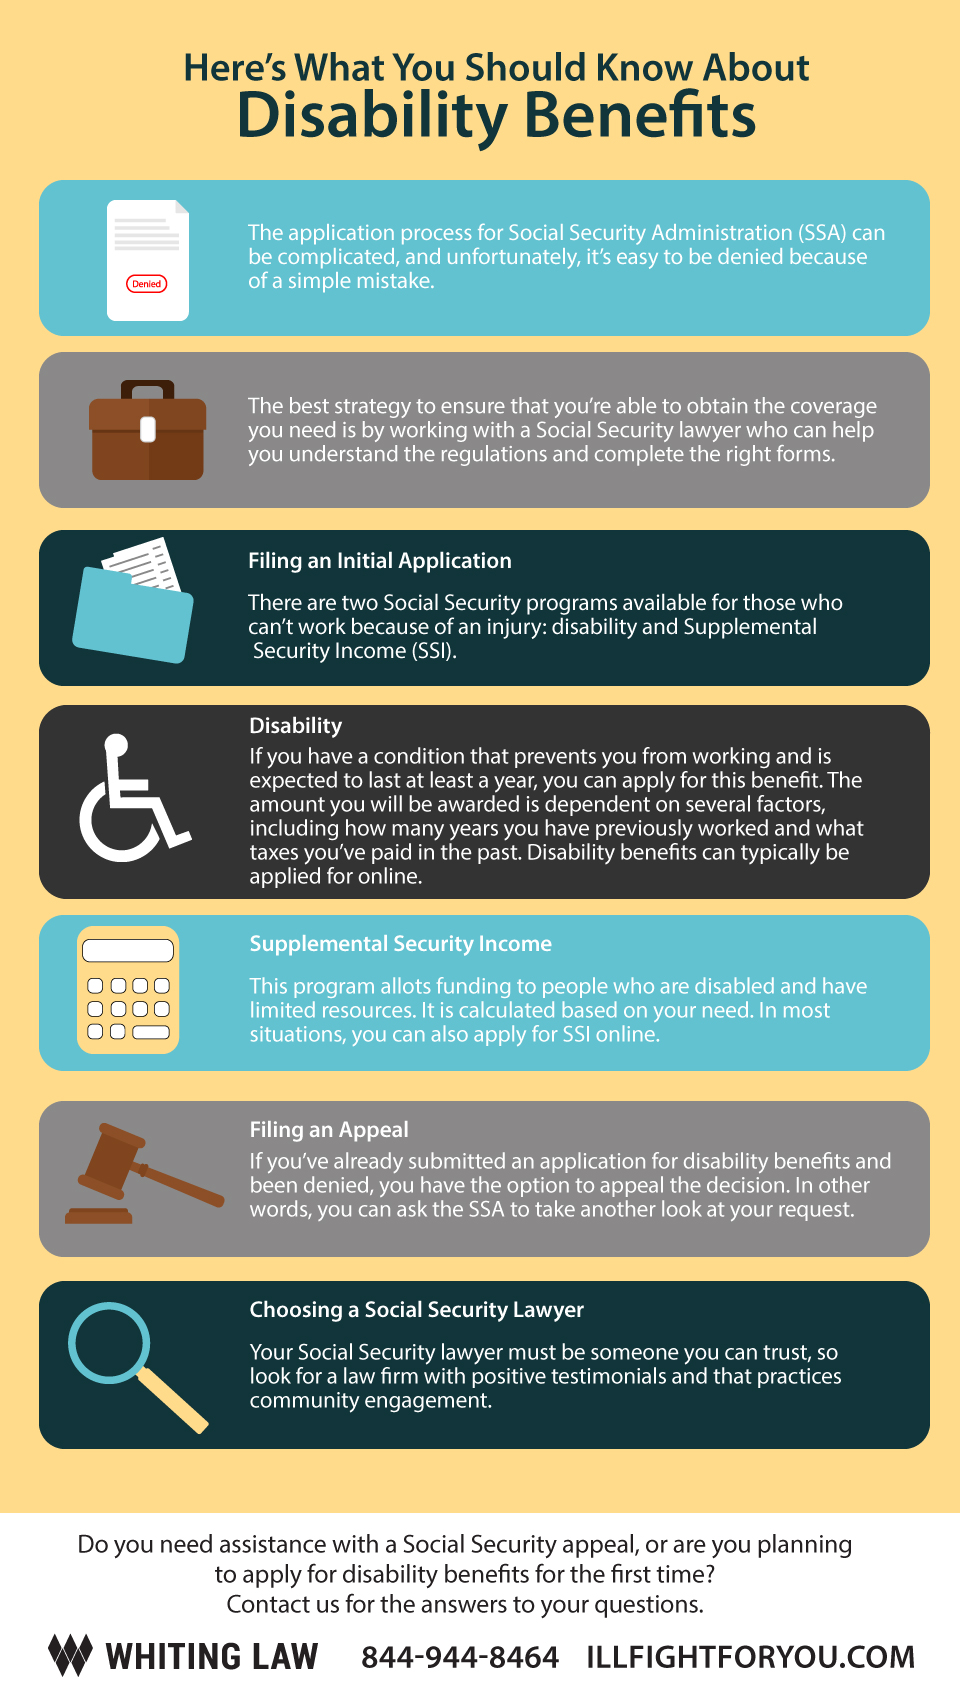 here-what-you-should-know-about-disabili